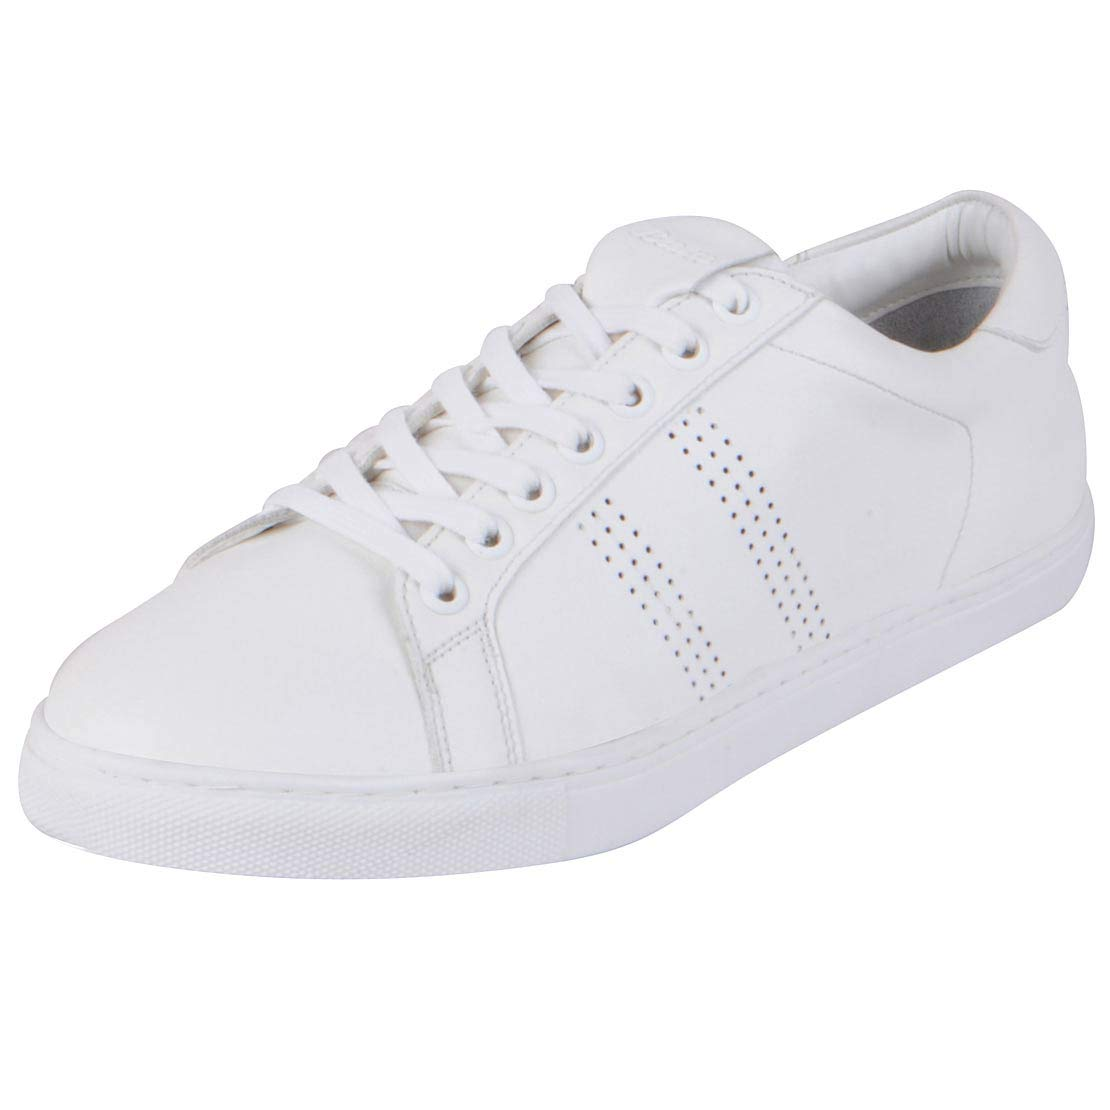 Buy BATA Men's Stylish Lace Up Sneakers